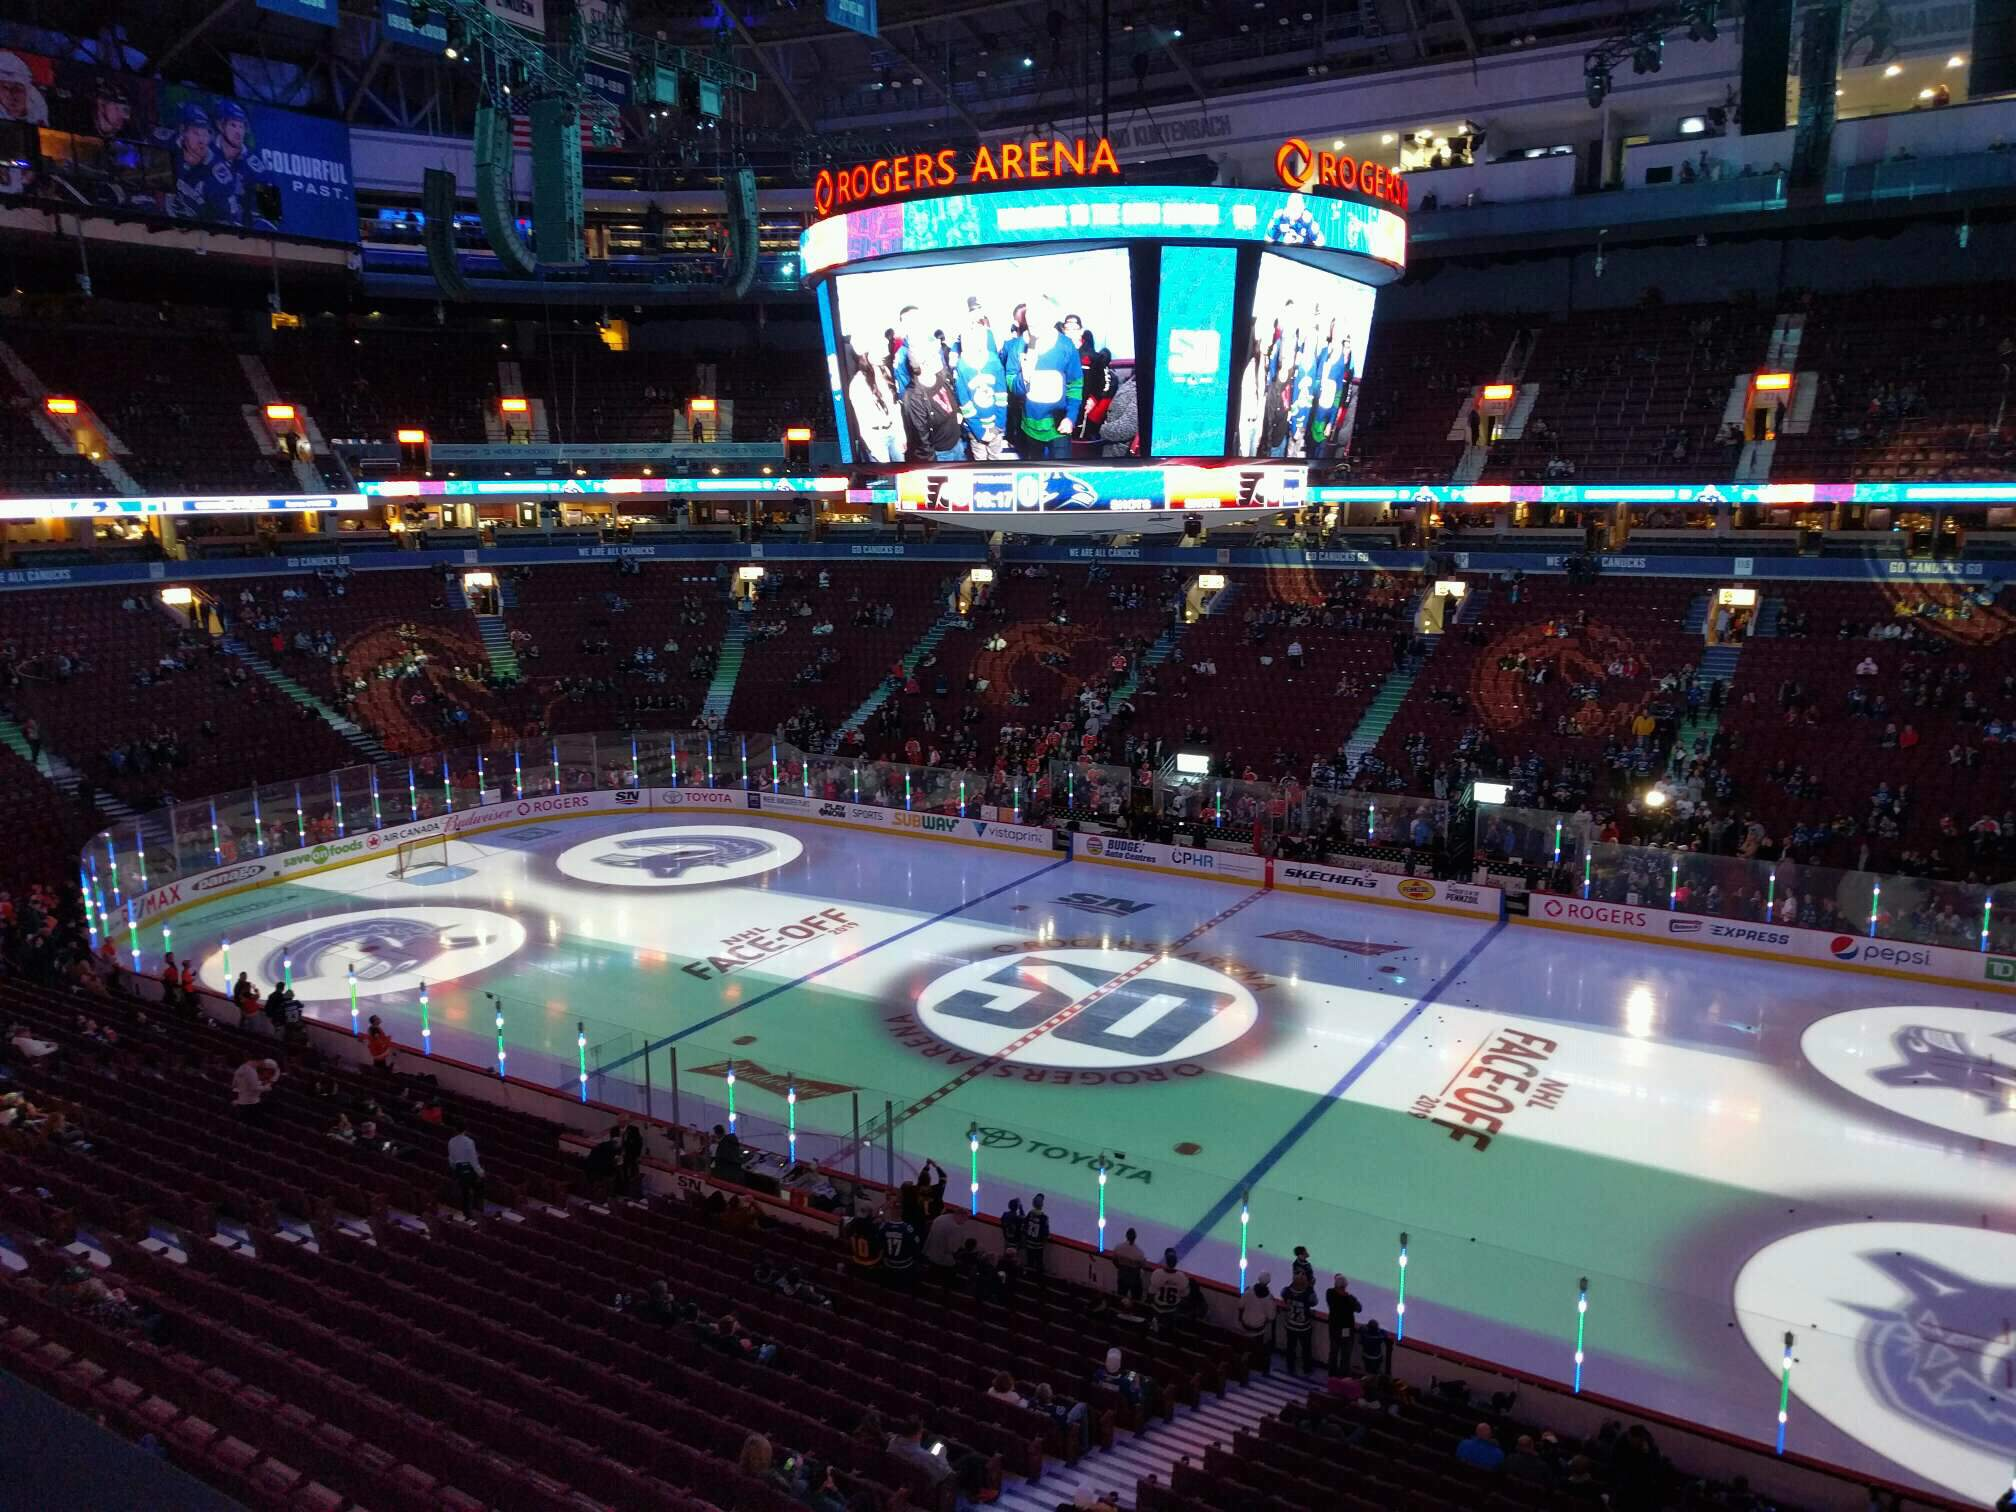 Rogers Arena Section 306 Row 1 Seat 108